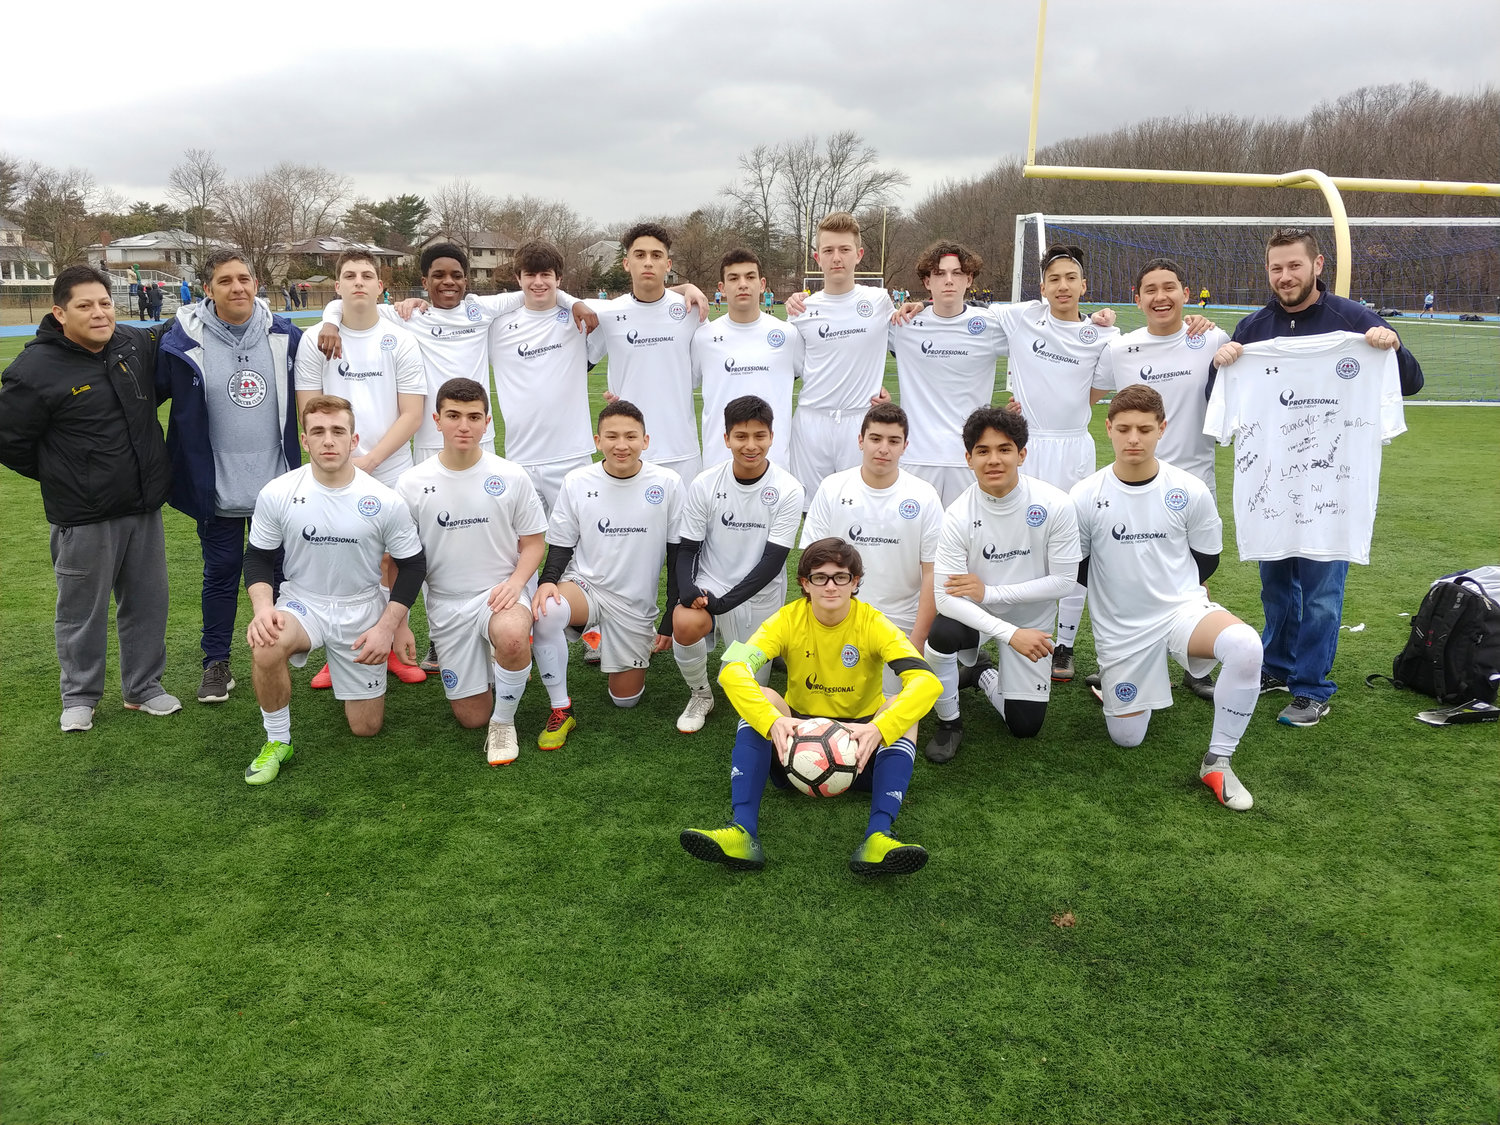 On opening day of the Hewlett Lawrence Soccer Club included games and presentations. Standing from left were Edson Melgarejo, Sabino Vardaro, Armando Vardaro, Vlad Fleurant, Ian Geraghty, Chris Gutierrez, Logan Miller, Adrian Sierzega, Connor Corbett, Alex Rosales, Juan Sanchez and Gavin Silver. Kneeling from left were Fletcher Goodman, Jake Nagar, Carlos Aguilar, Fernando, Alvarado, Fabrizio Caruso, Antony Tortola, Lawrence Brenner. Kyle Scallan with ball.